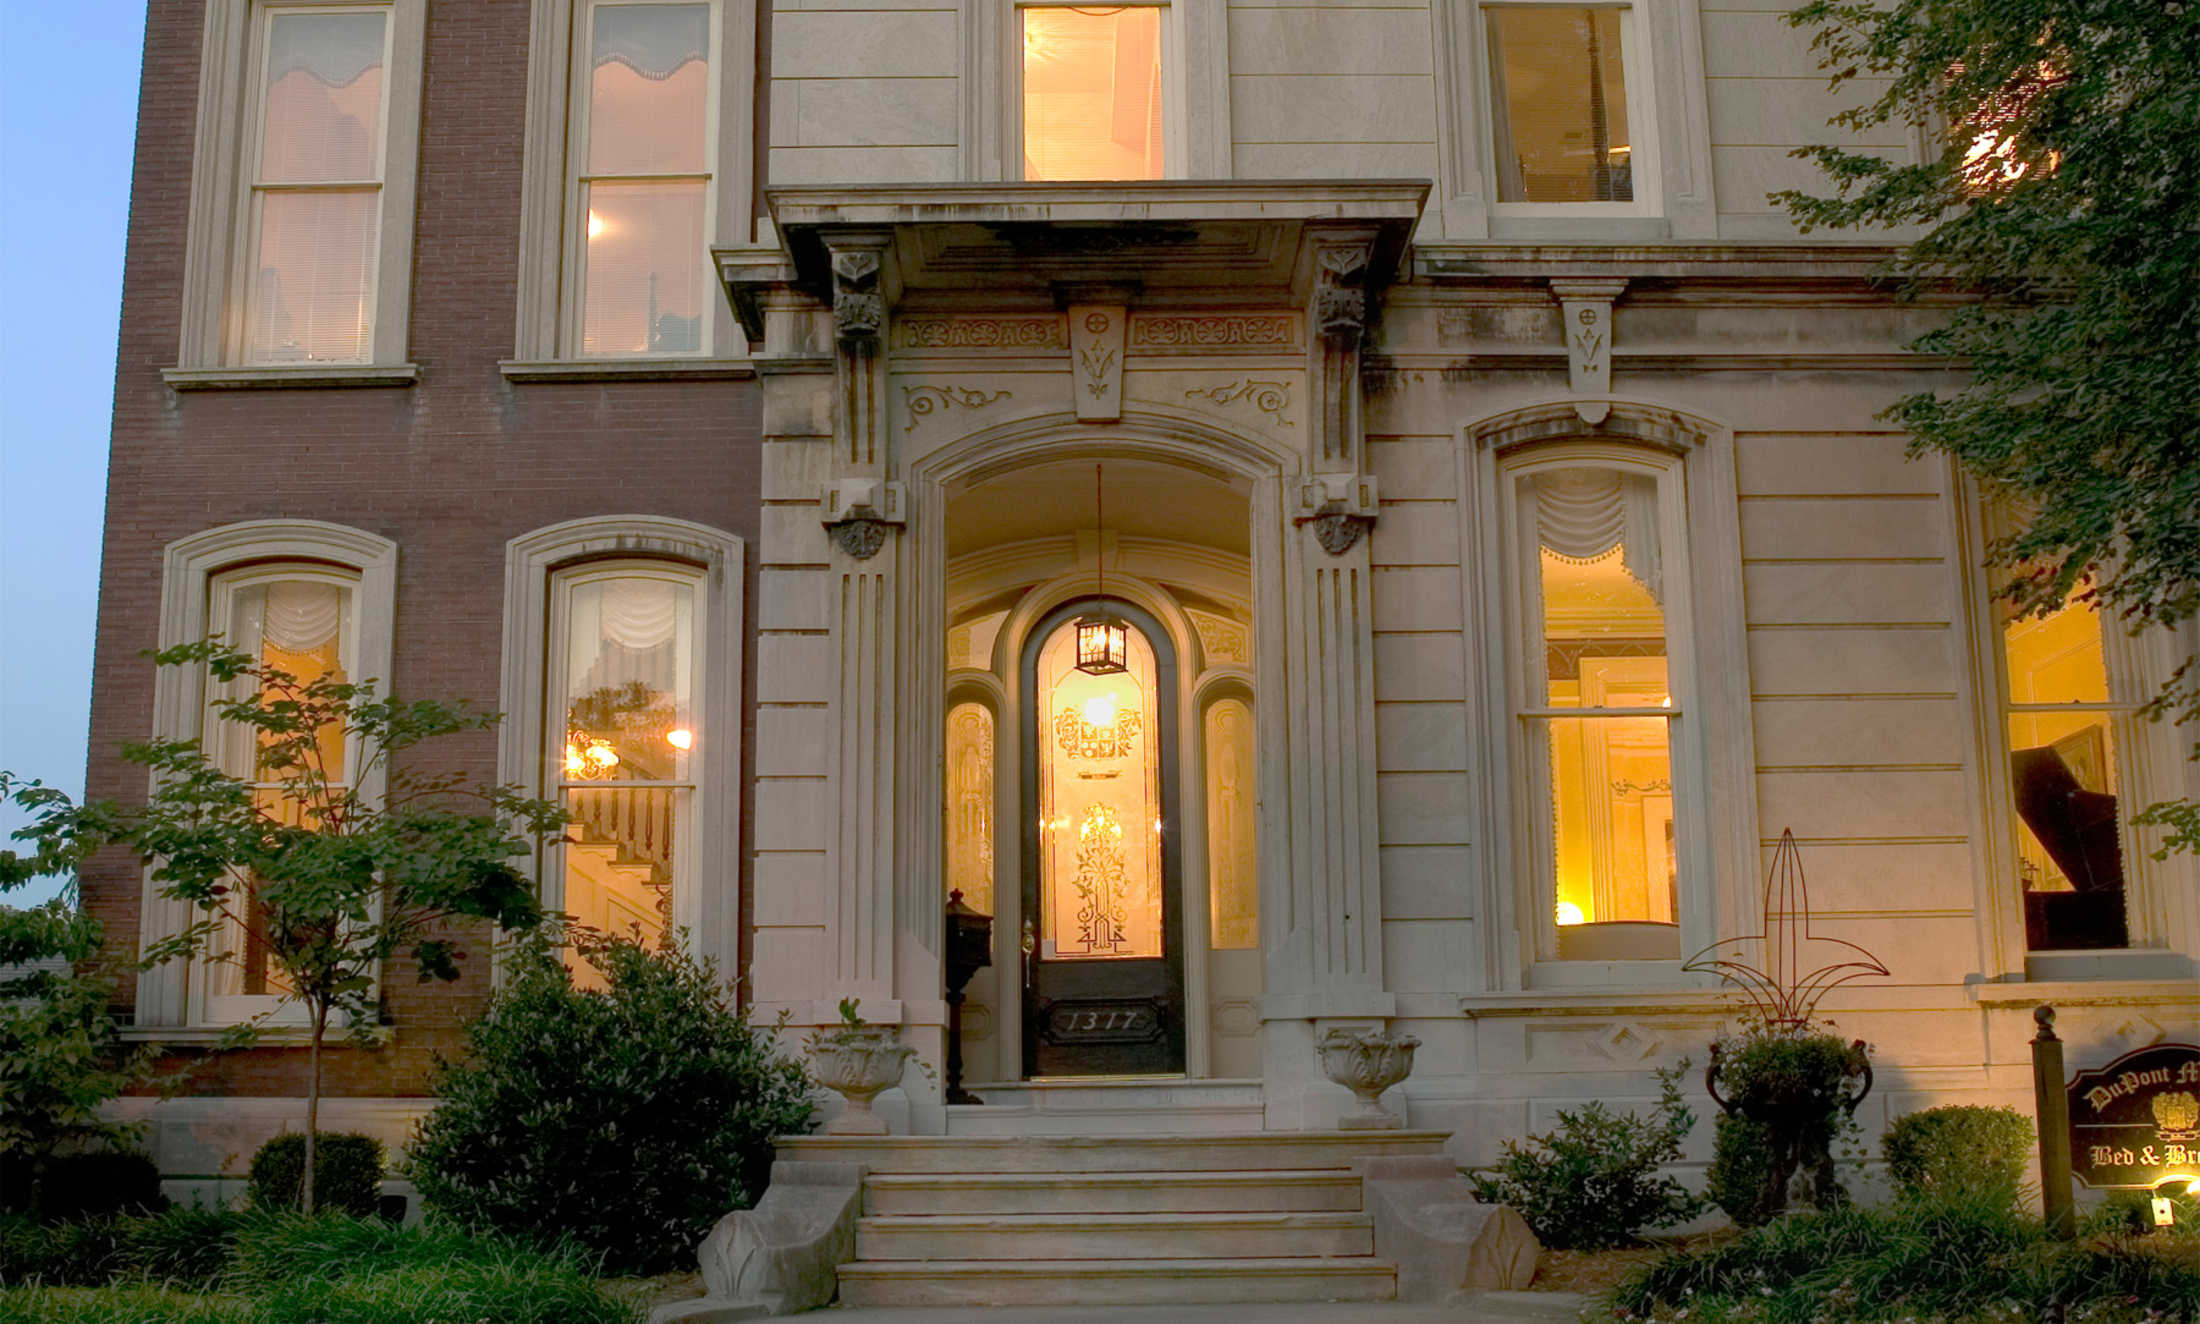 Extended Stay Inns Louisville Ky Bed And Breakfast - Dupont Mansion Historic B&b